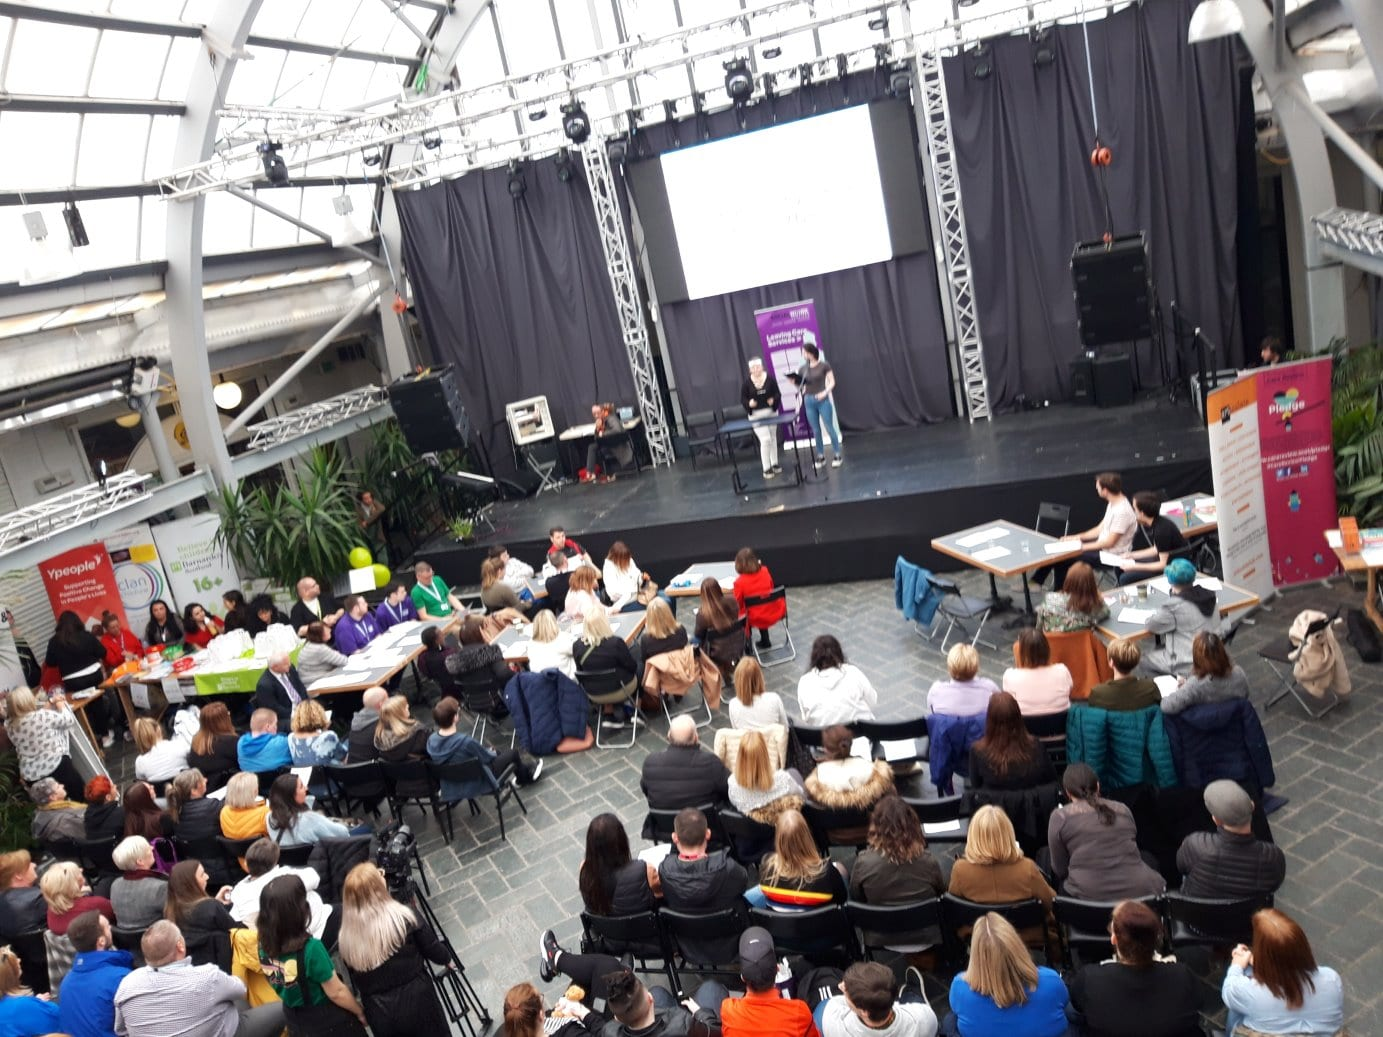 audience listening to speakers on stage